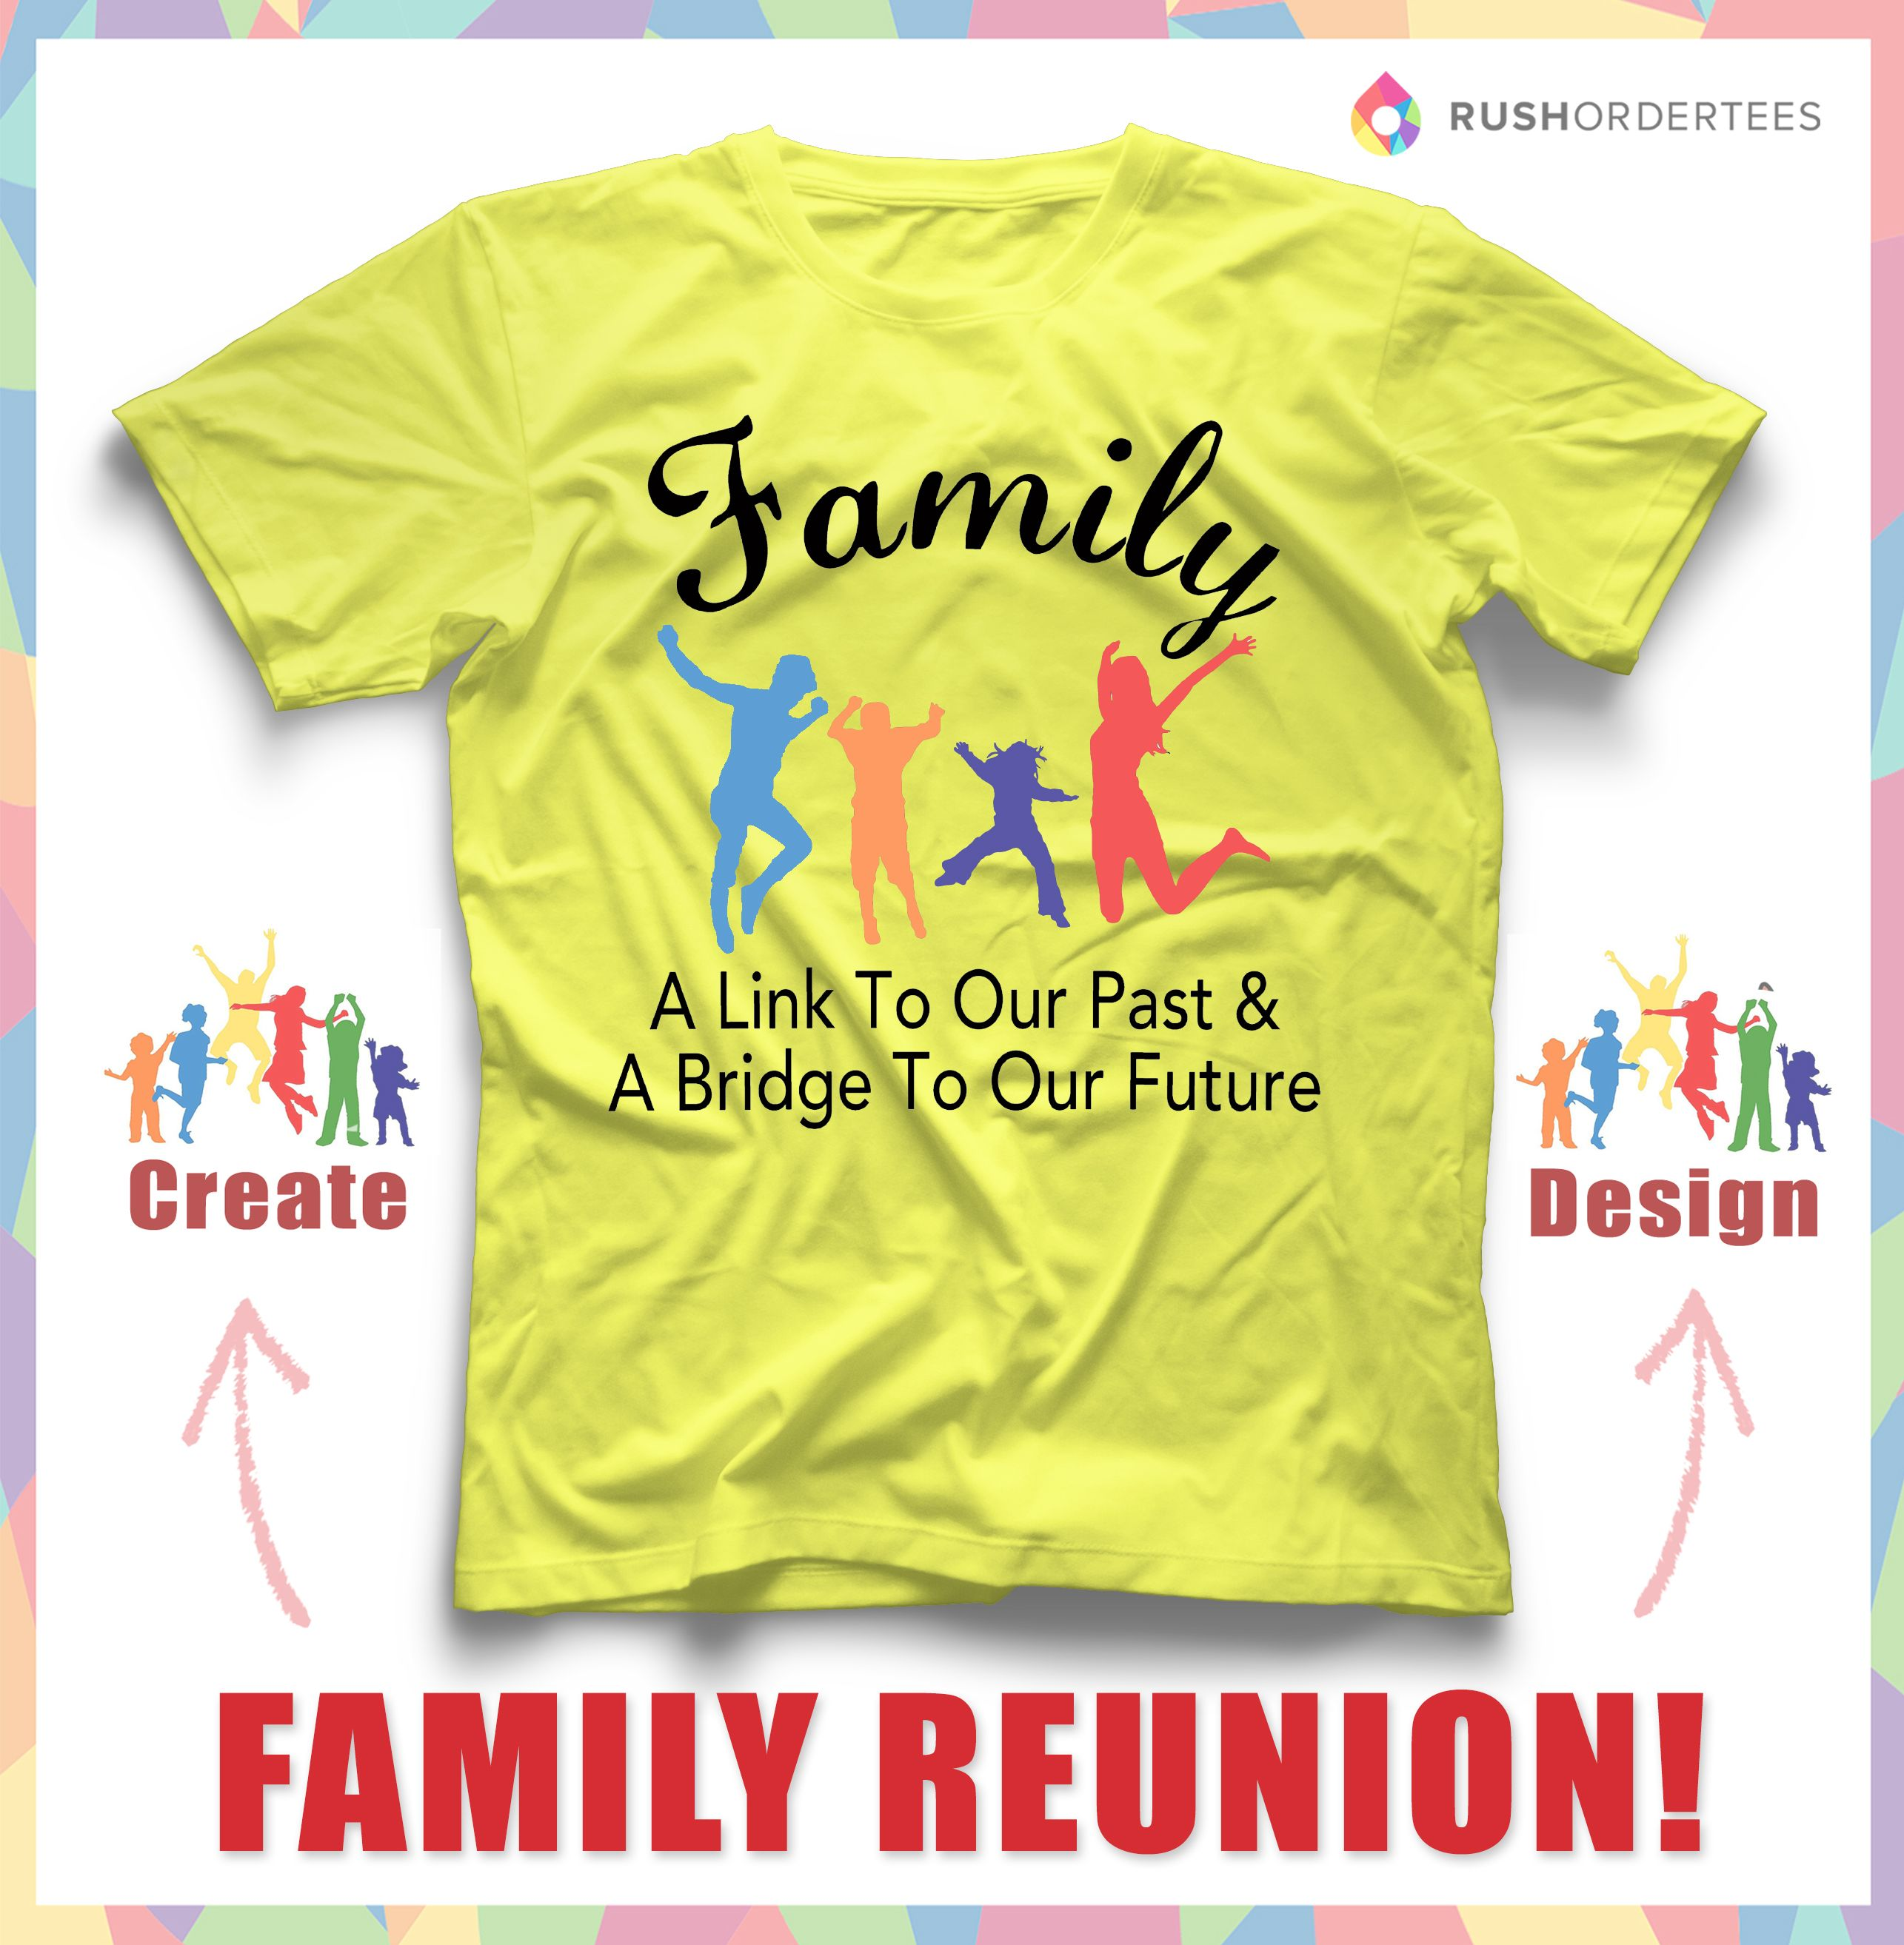 Family Reunion Custom T Shirt Design Idea! Create An Awesome Custom Design  For Your